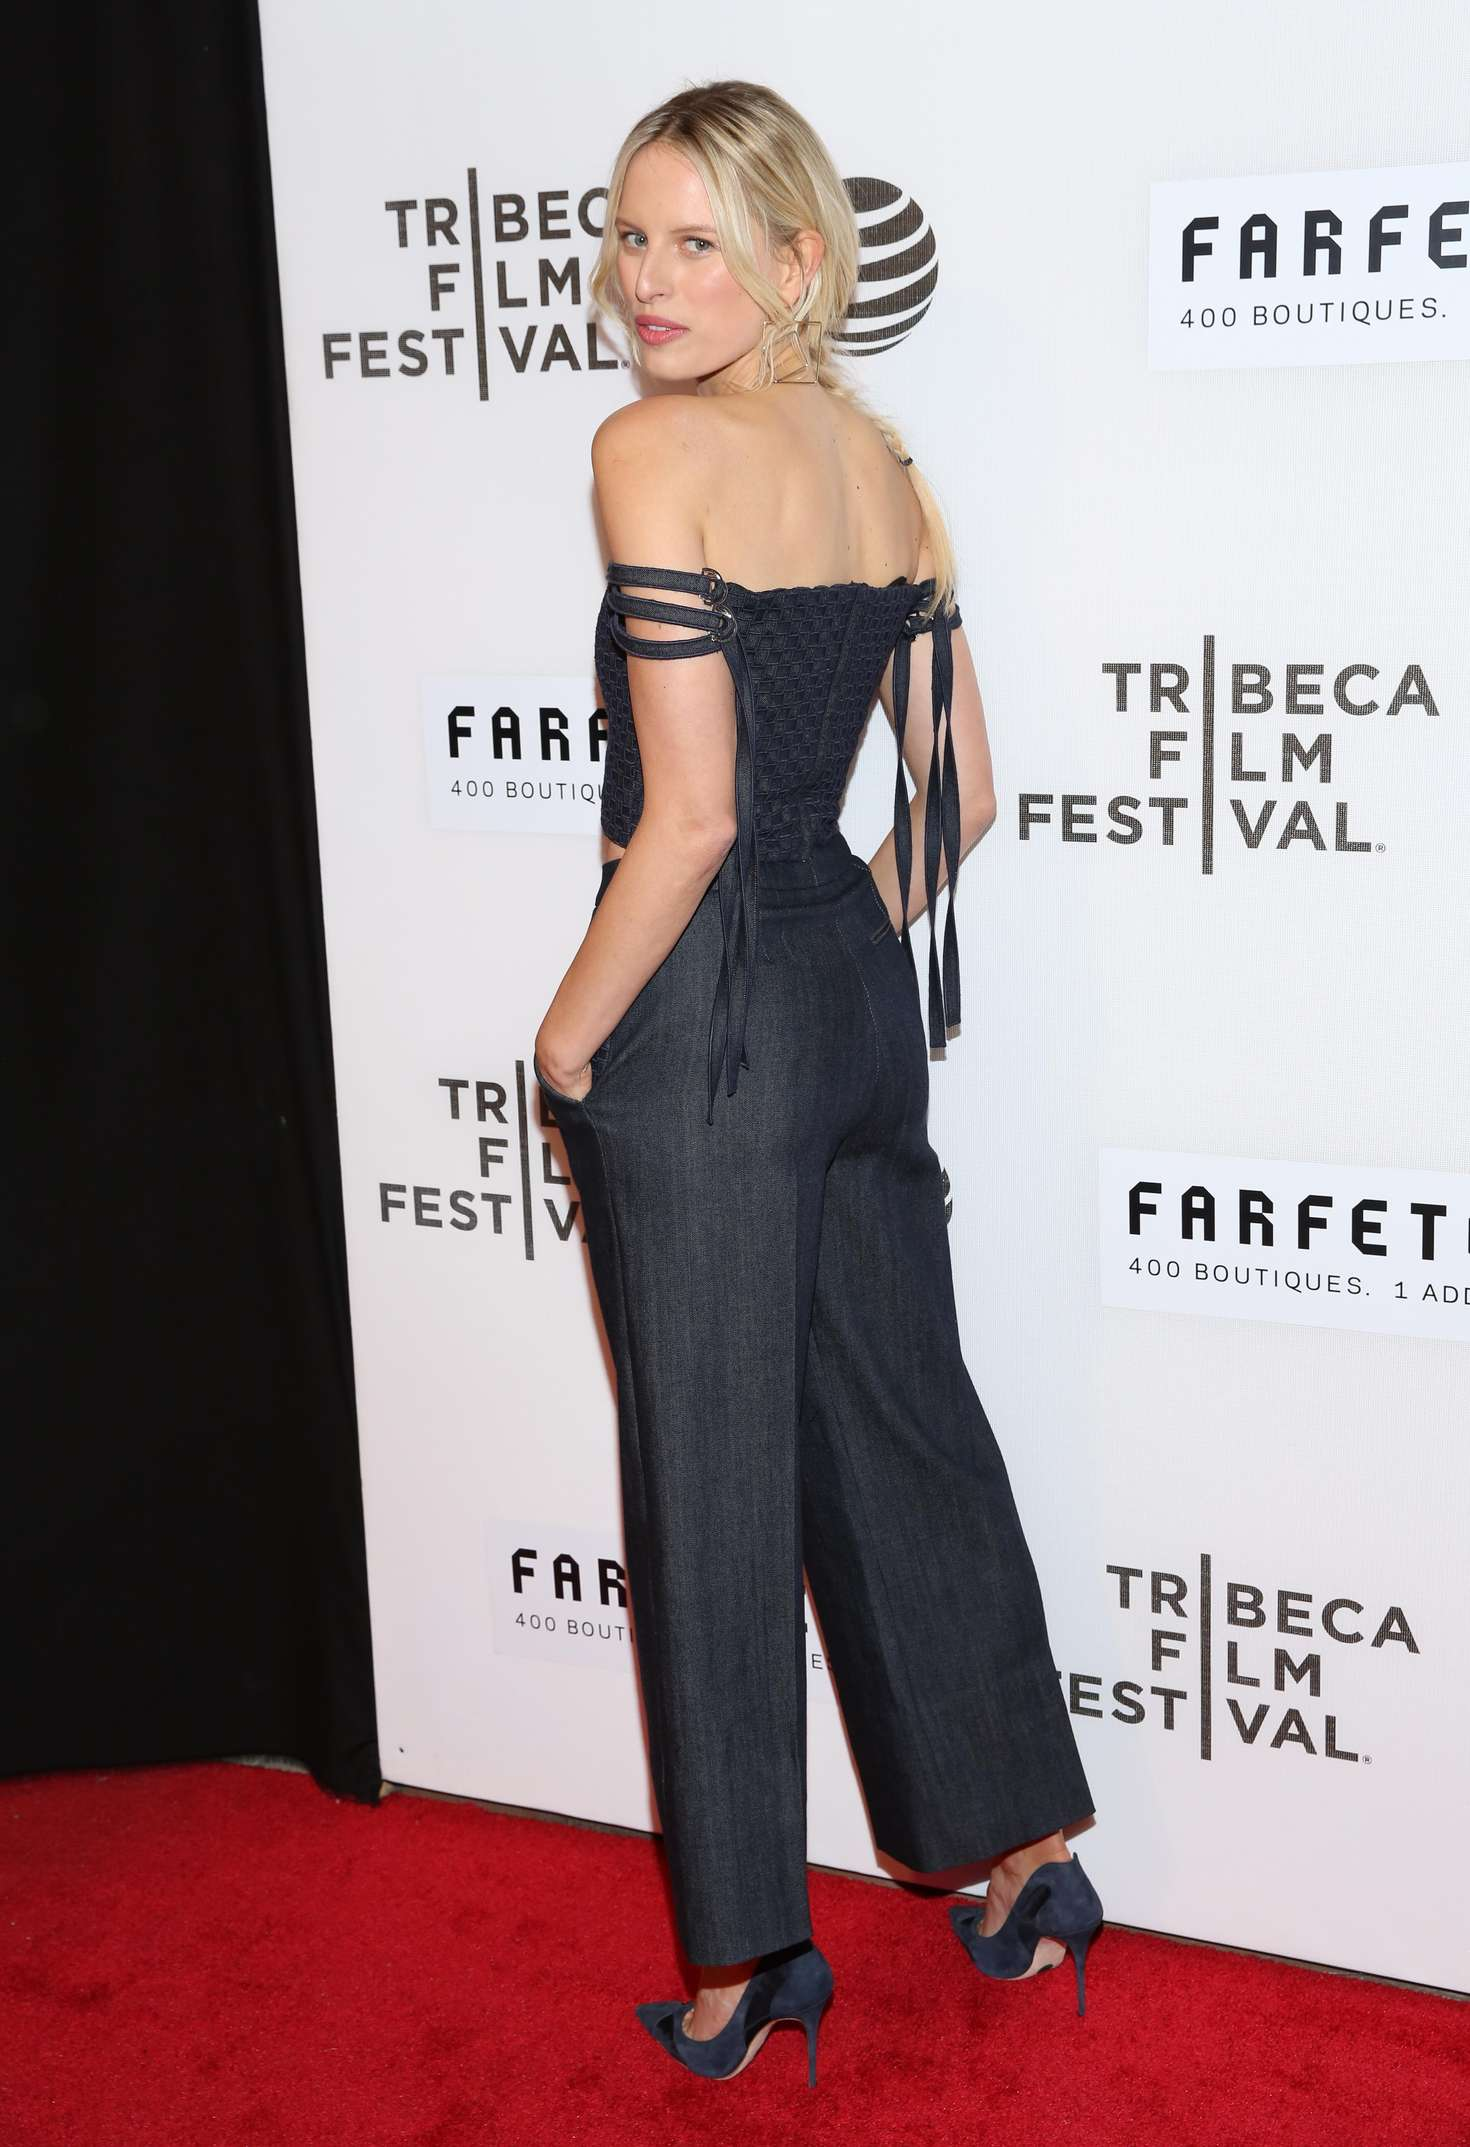 Karolina Kurkova The First Monday in May Premiere at the Tribeca Film Festival in New York